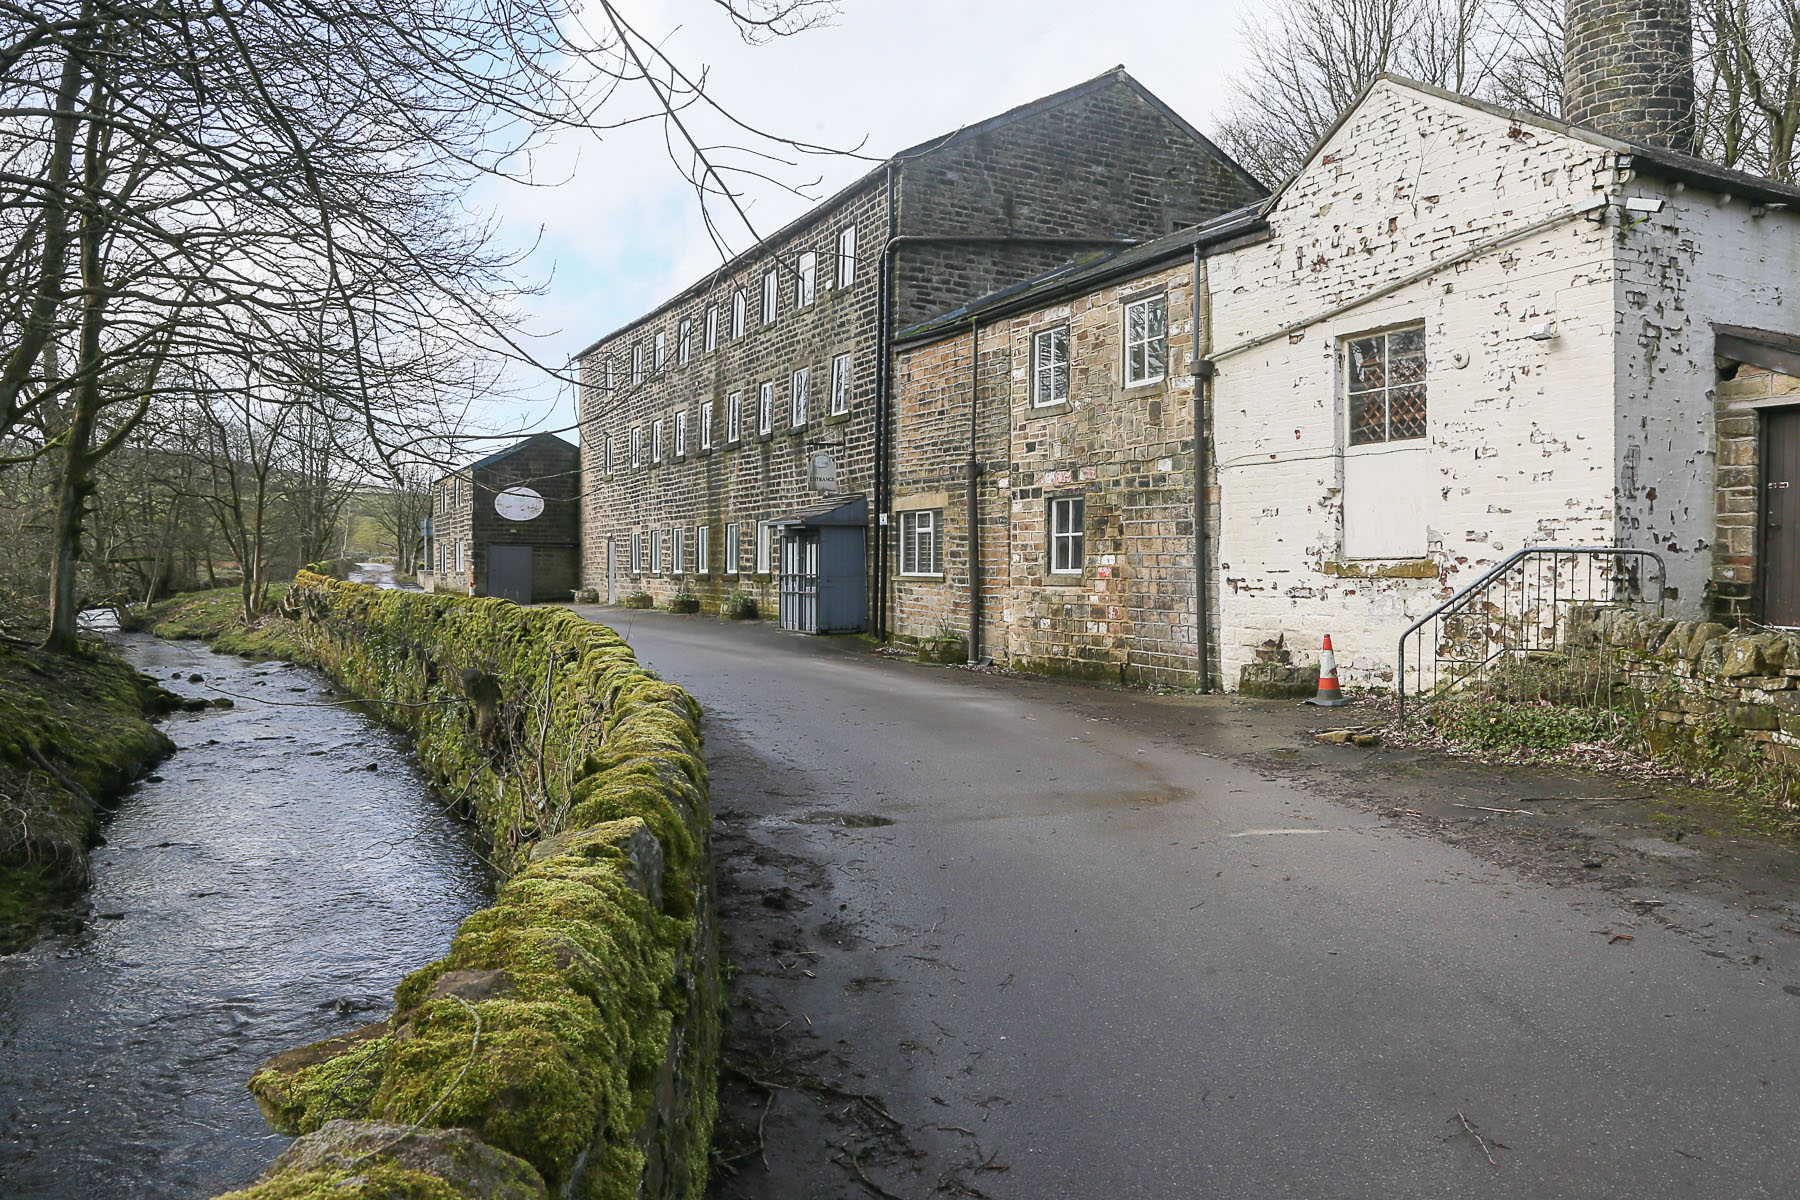 Ponden Mill, near Stanbury, which is the subject of a planning application